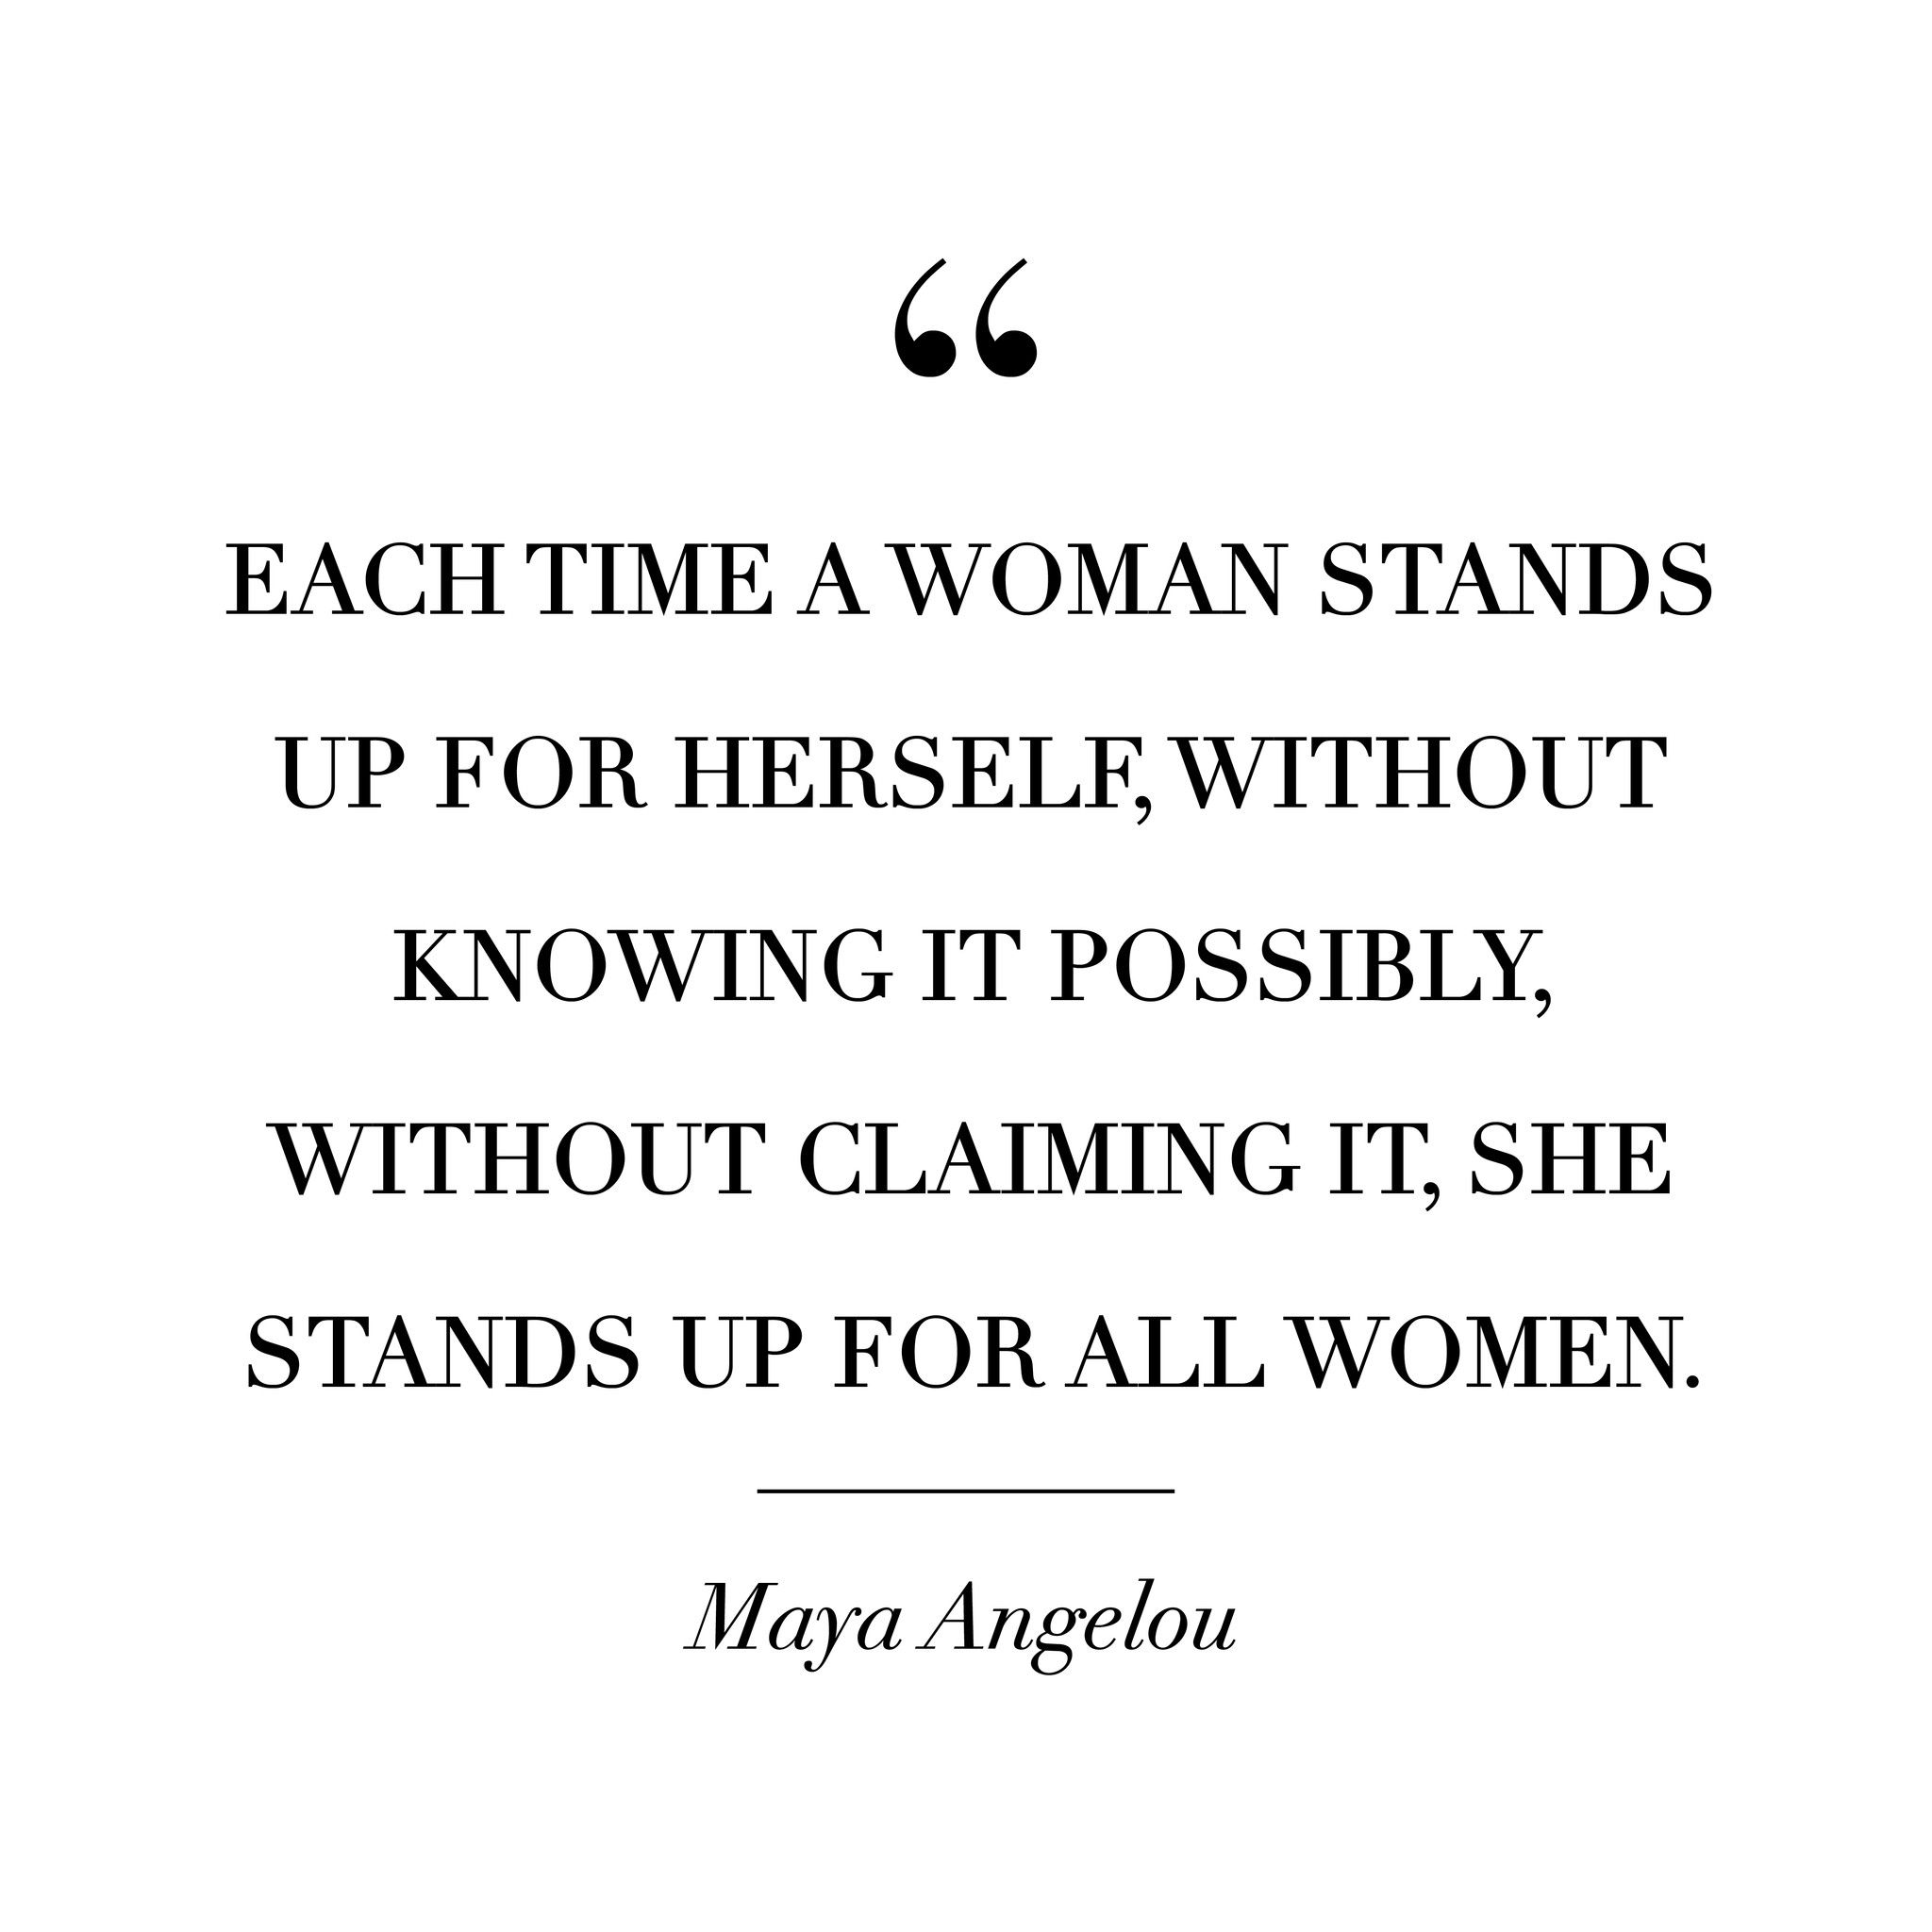 Women Empowerment Quotes Fair 8 Empowering Quotesinspirational Women  Pinterest